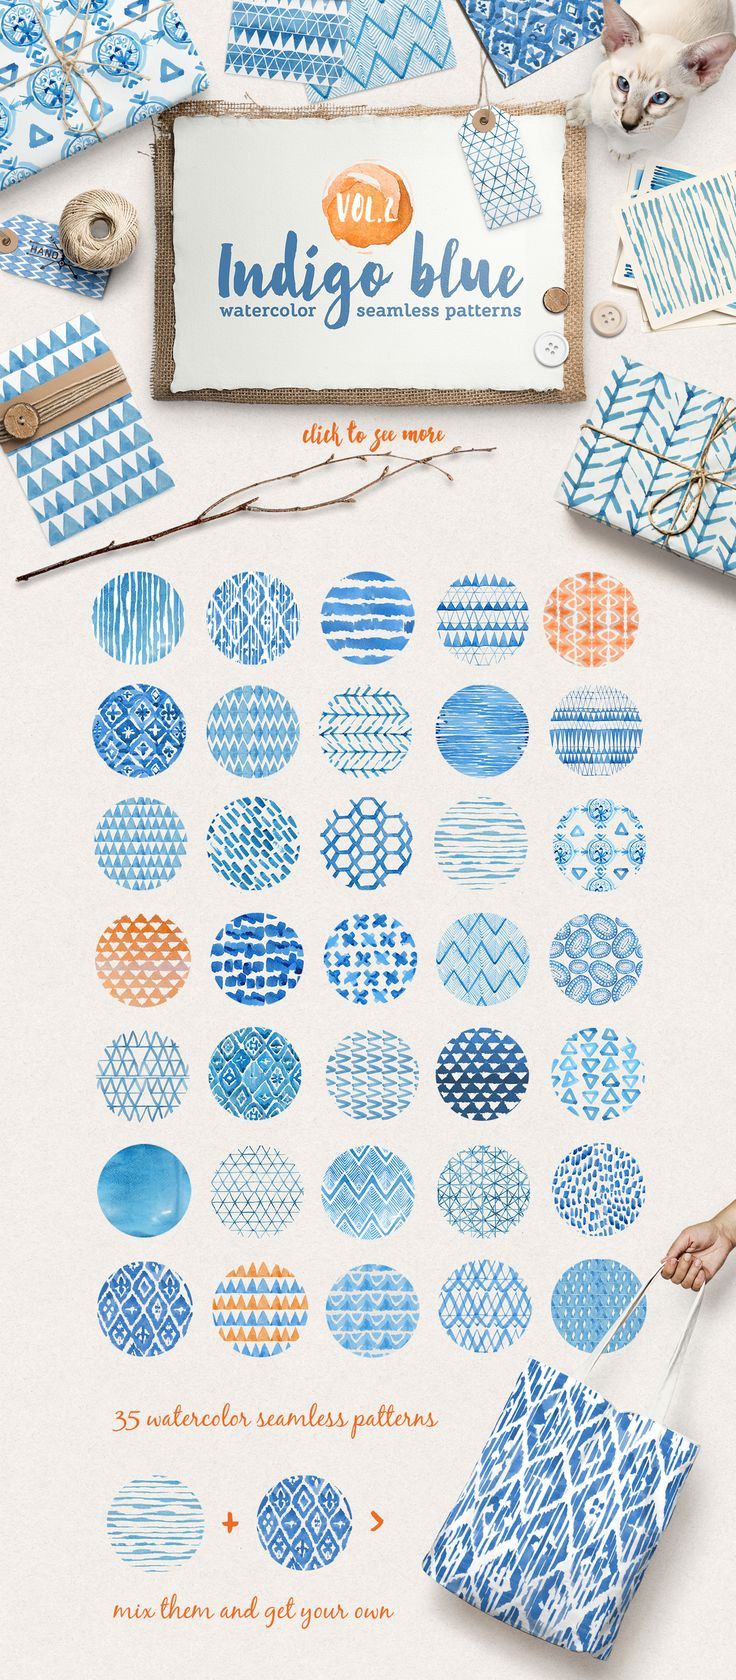 Introducing Volume 2 of the my new handy watercolor patterns collection! Set of 36 lovely indigo blue watercolor seamless patterns. Perfect for branding, websites, digital media, packaging design, greetings, invites, weddings, apparel, merchandise designs, scrapbooking, home decor (pillows, towels, napkins), fashion and so much more.